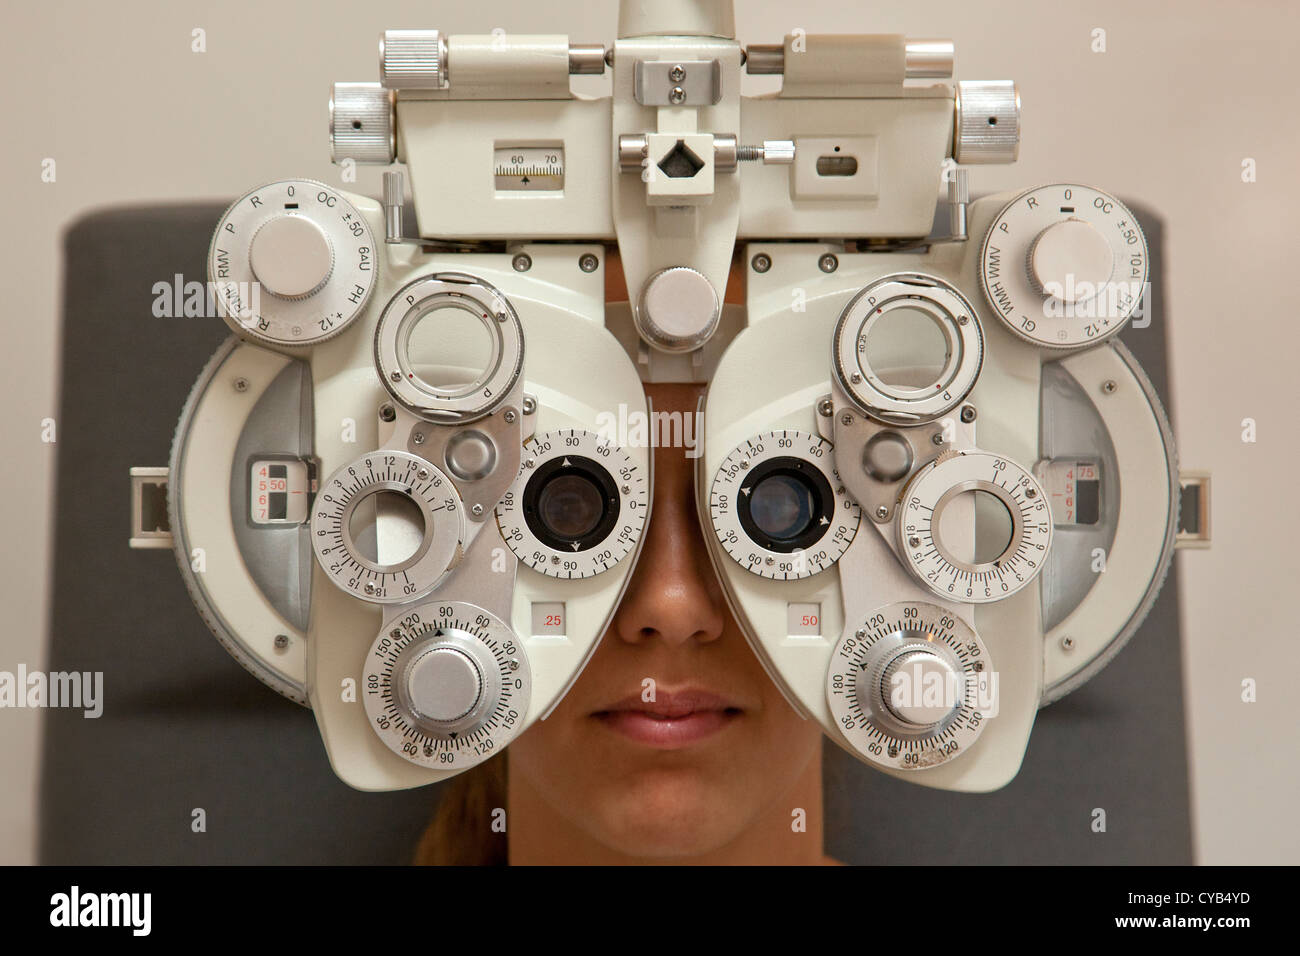 woman patient having an eye test examination on a Reichert ultramatic phoropter, autorefractometer instrument in - Stock Image